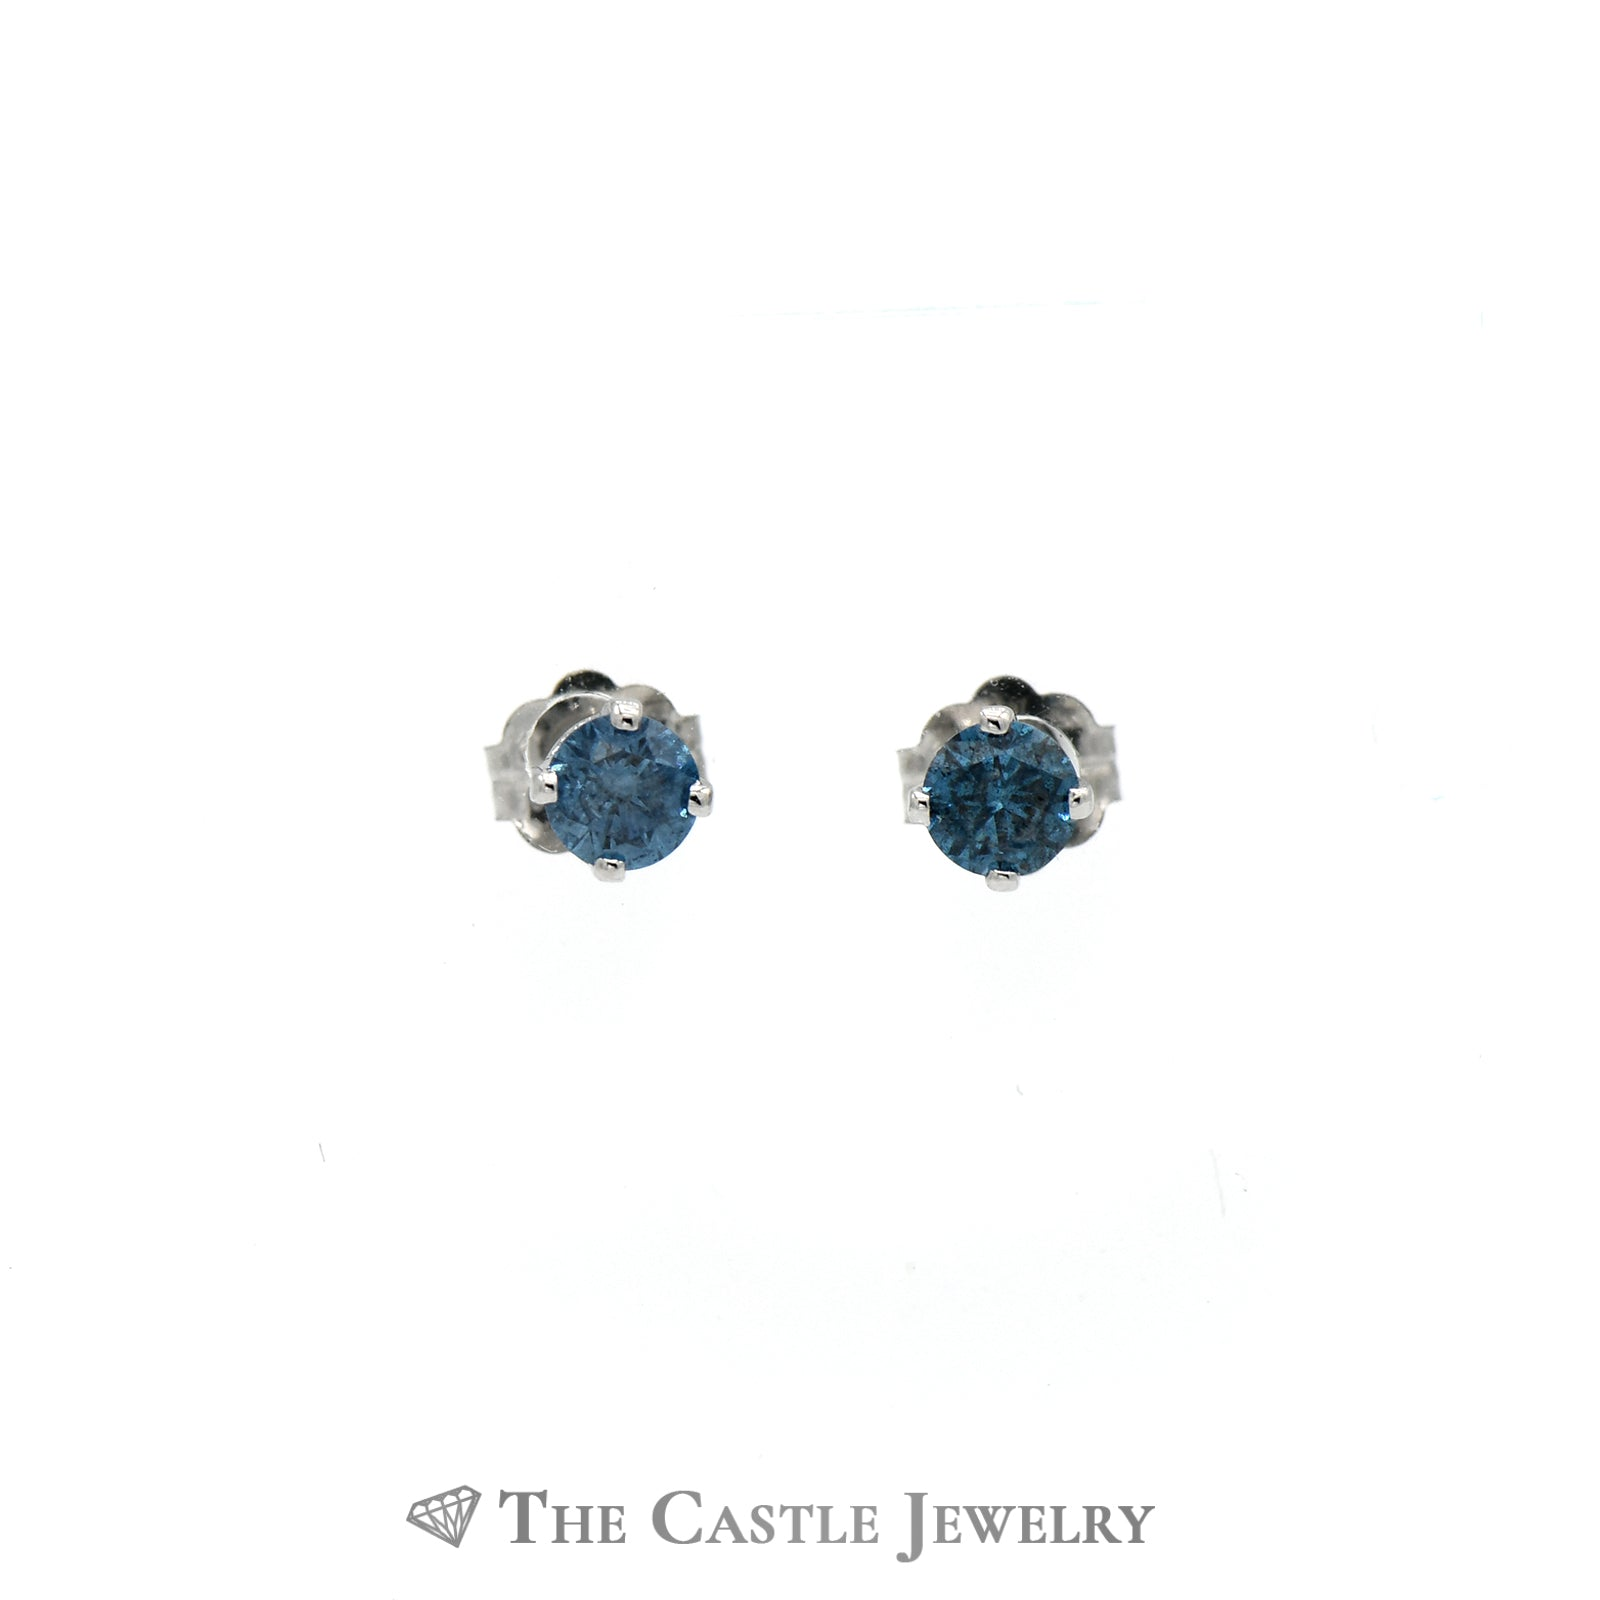 Sparkling Blue Diamond Stud Earrings in 14K White Gold